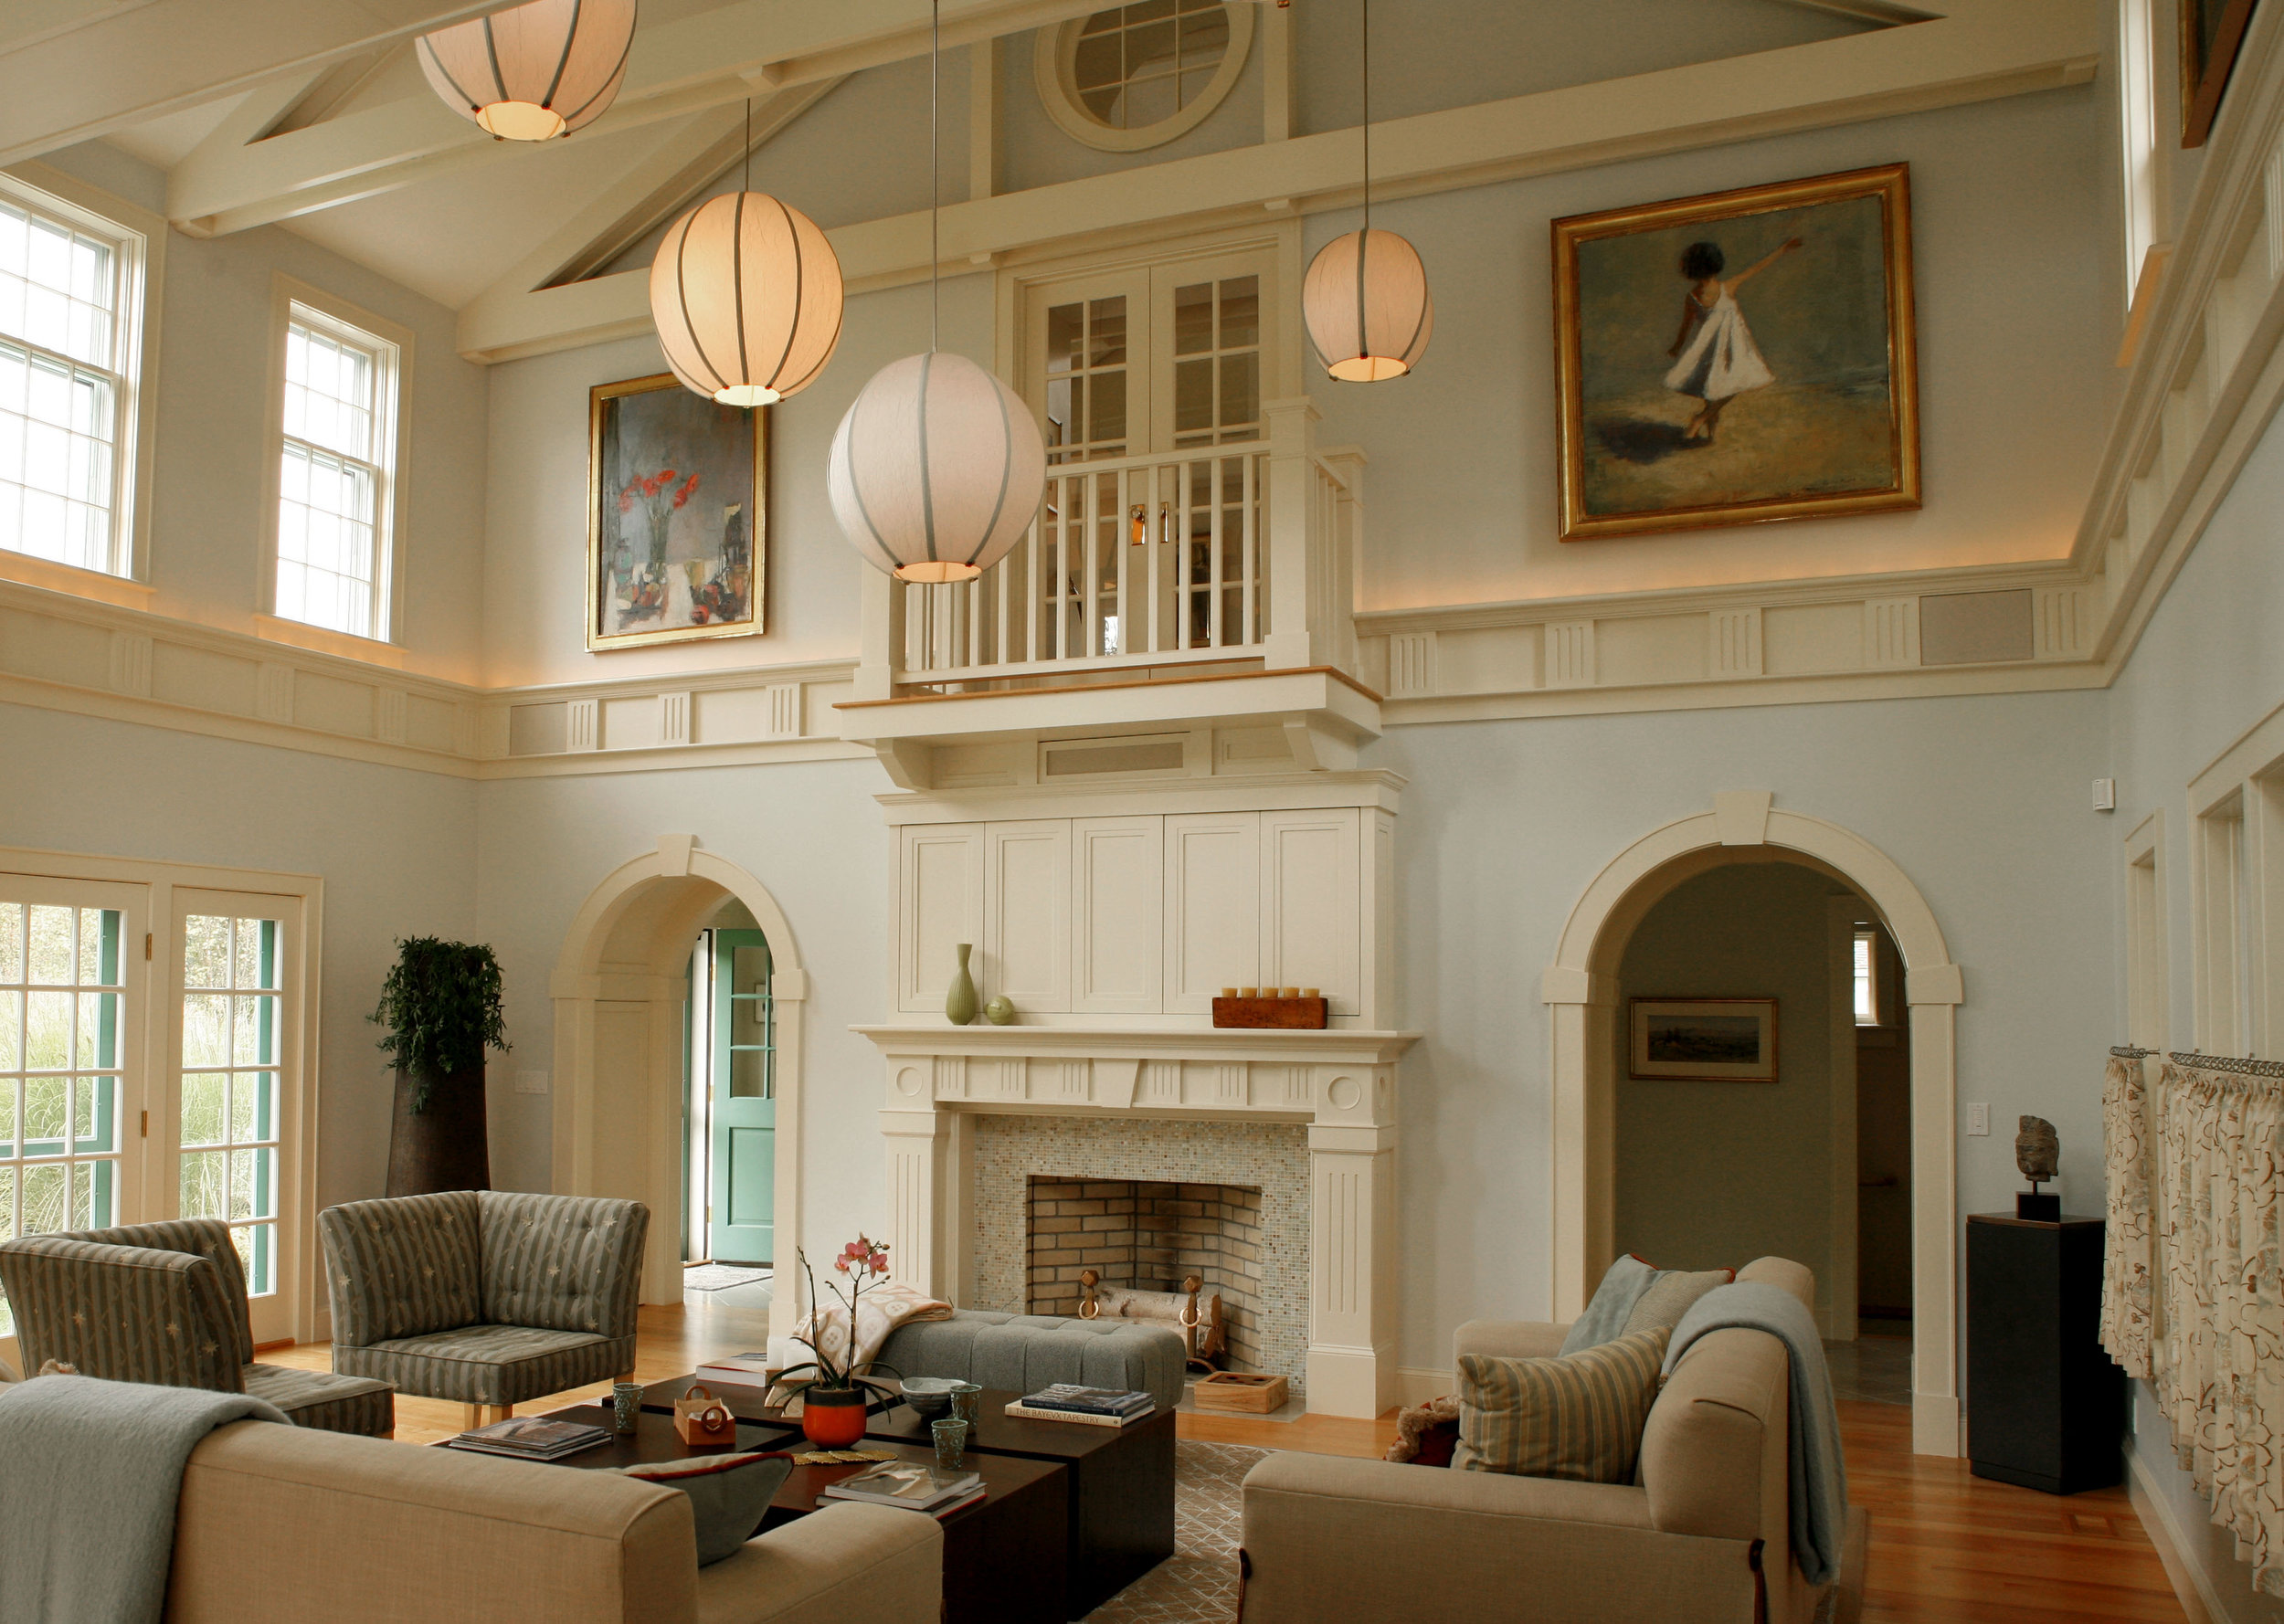 Living Room cropped2-colorcorrected.jpg